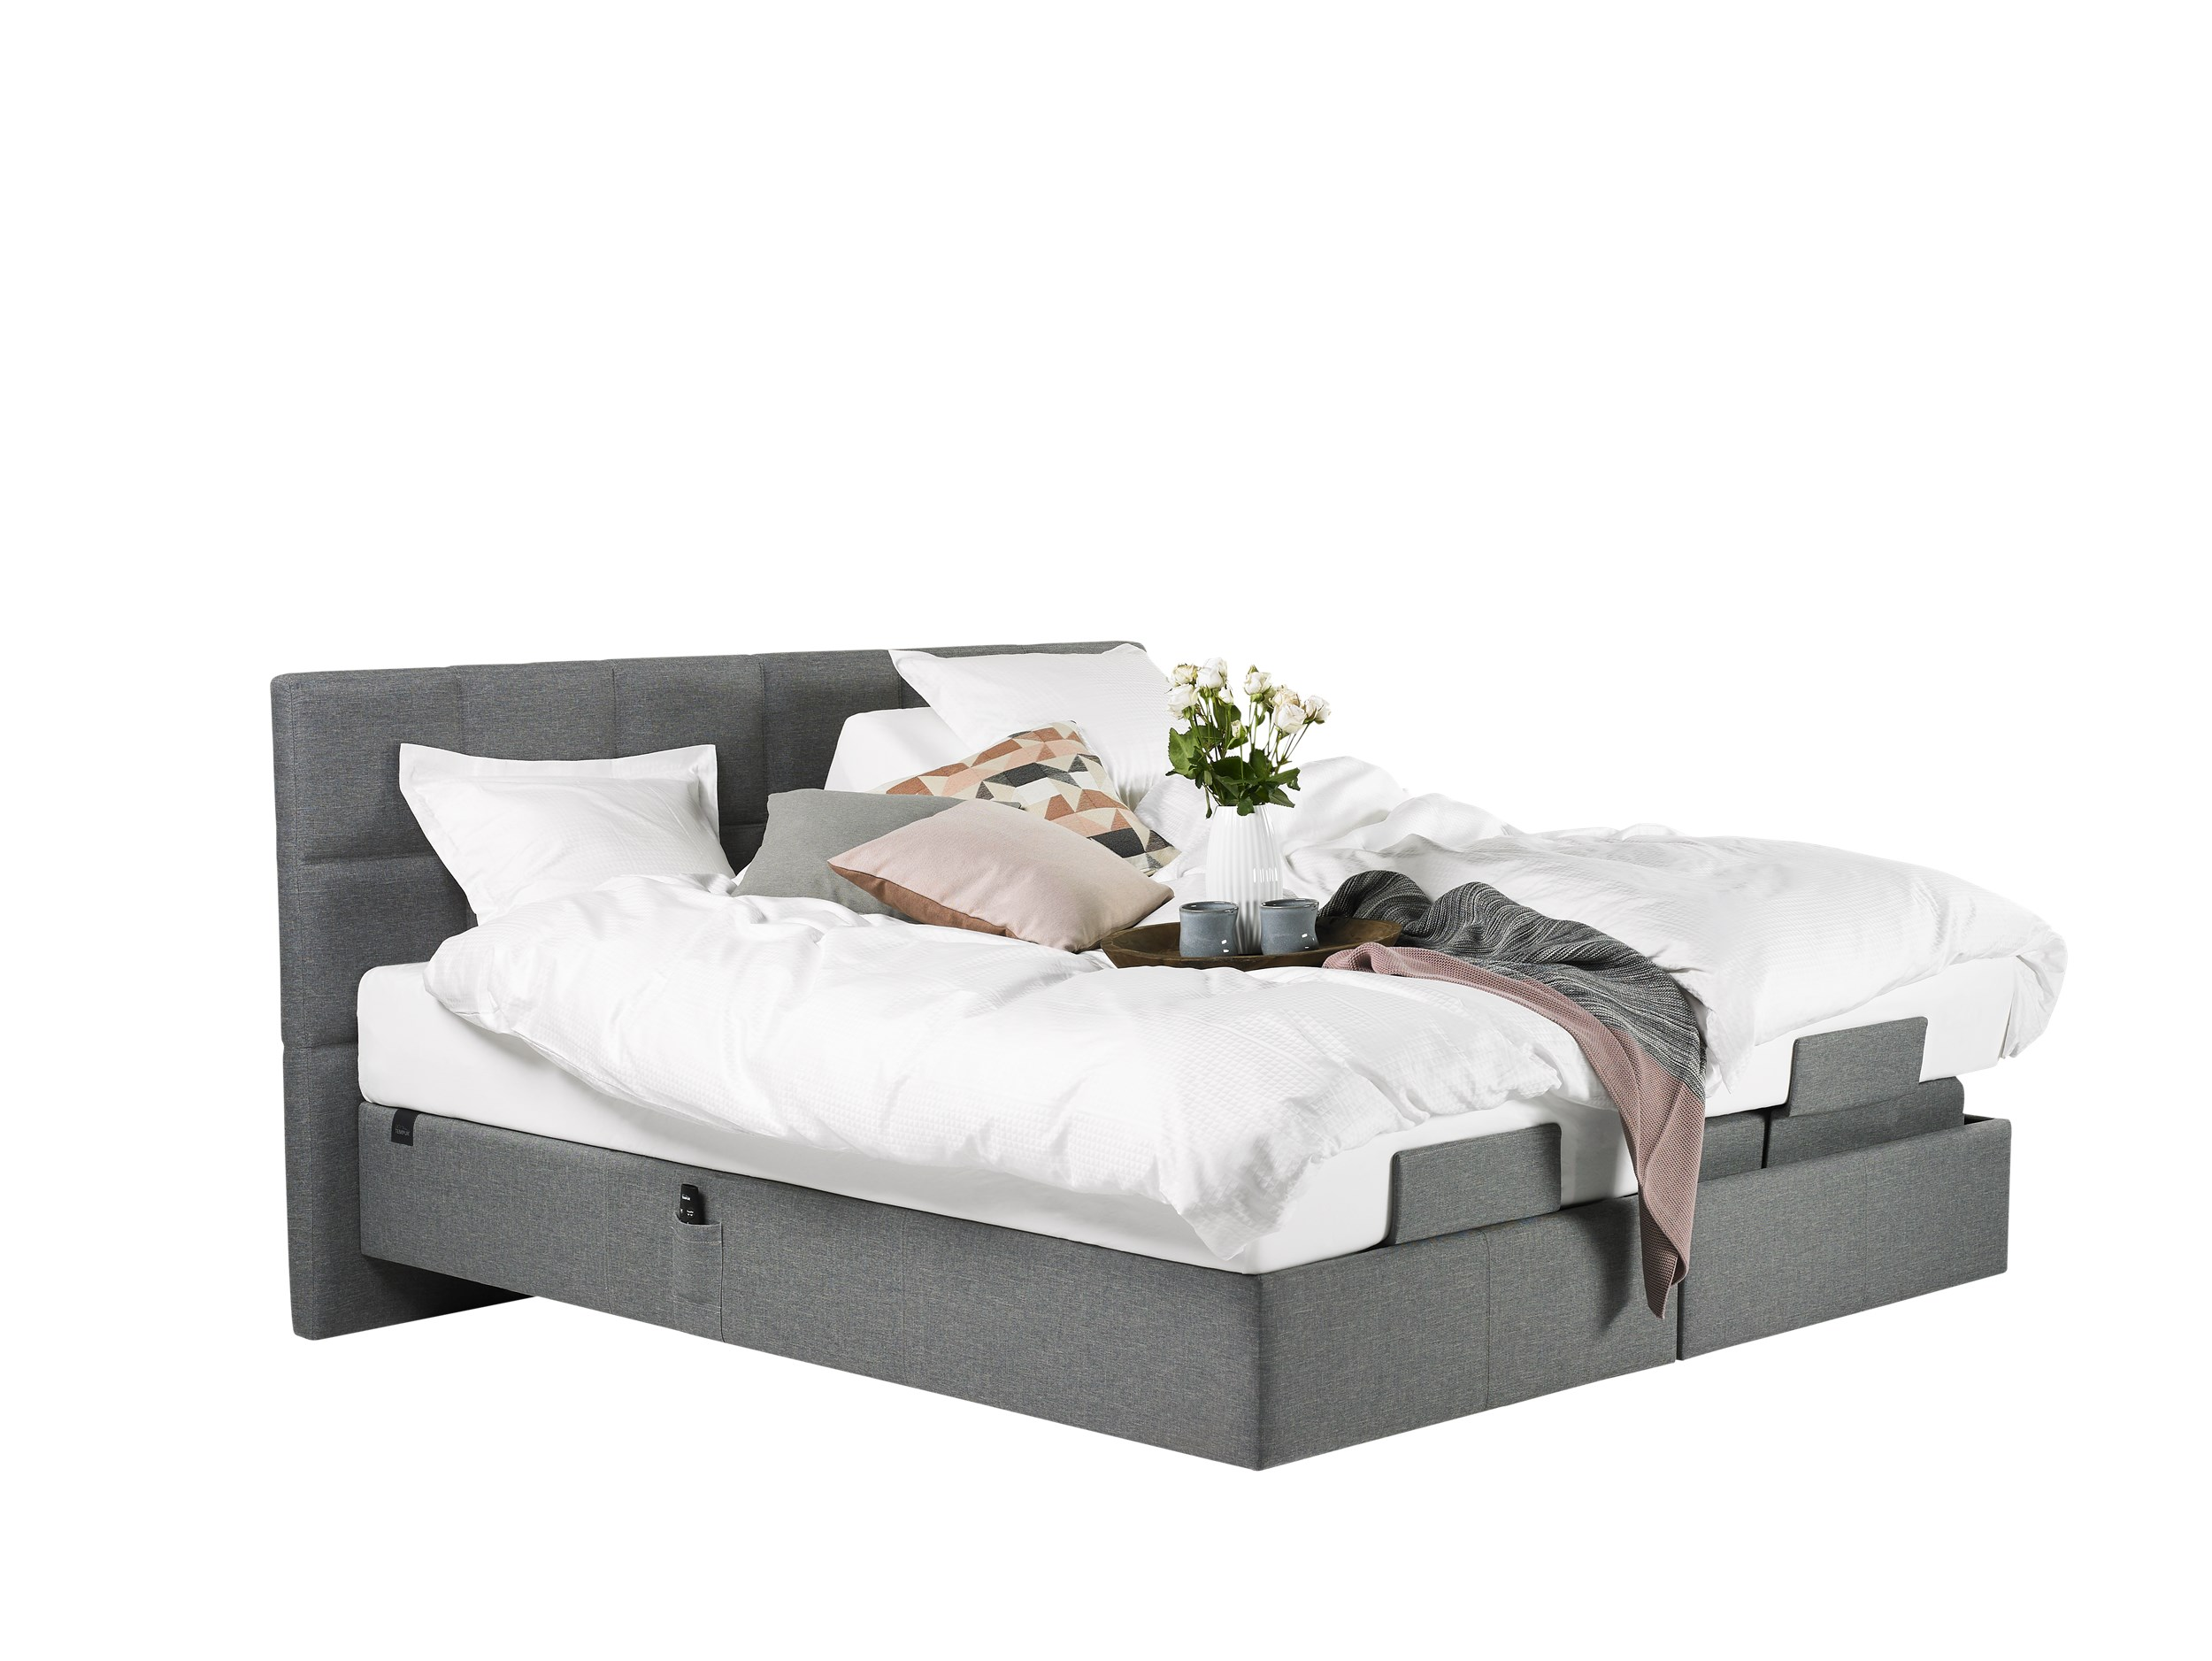 Tempur Spring Box Adjustable Bokselevationsseng 180 x 200 cm - Bokselevationsseng 180 x 200 cm